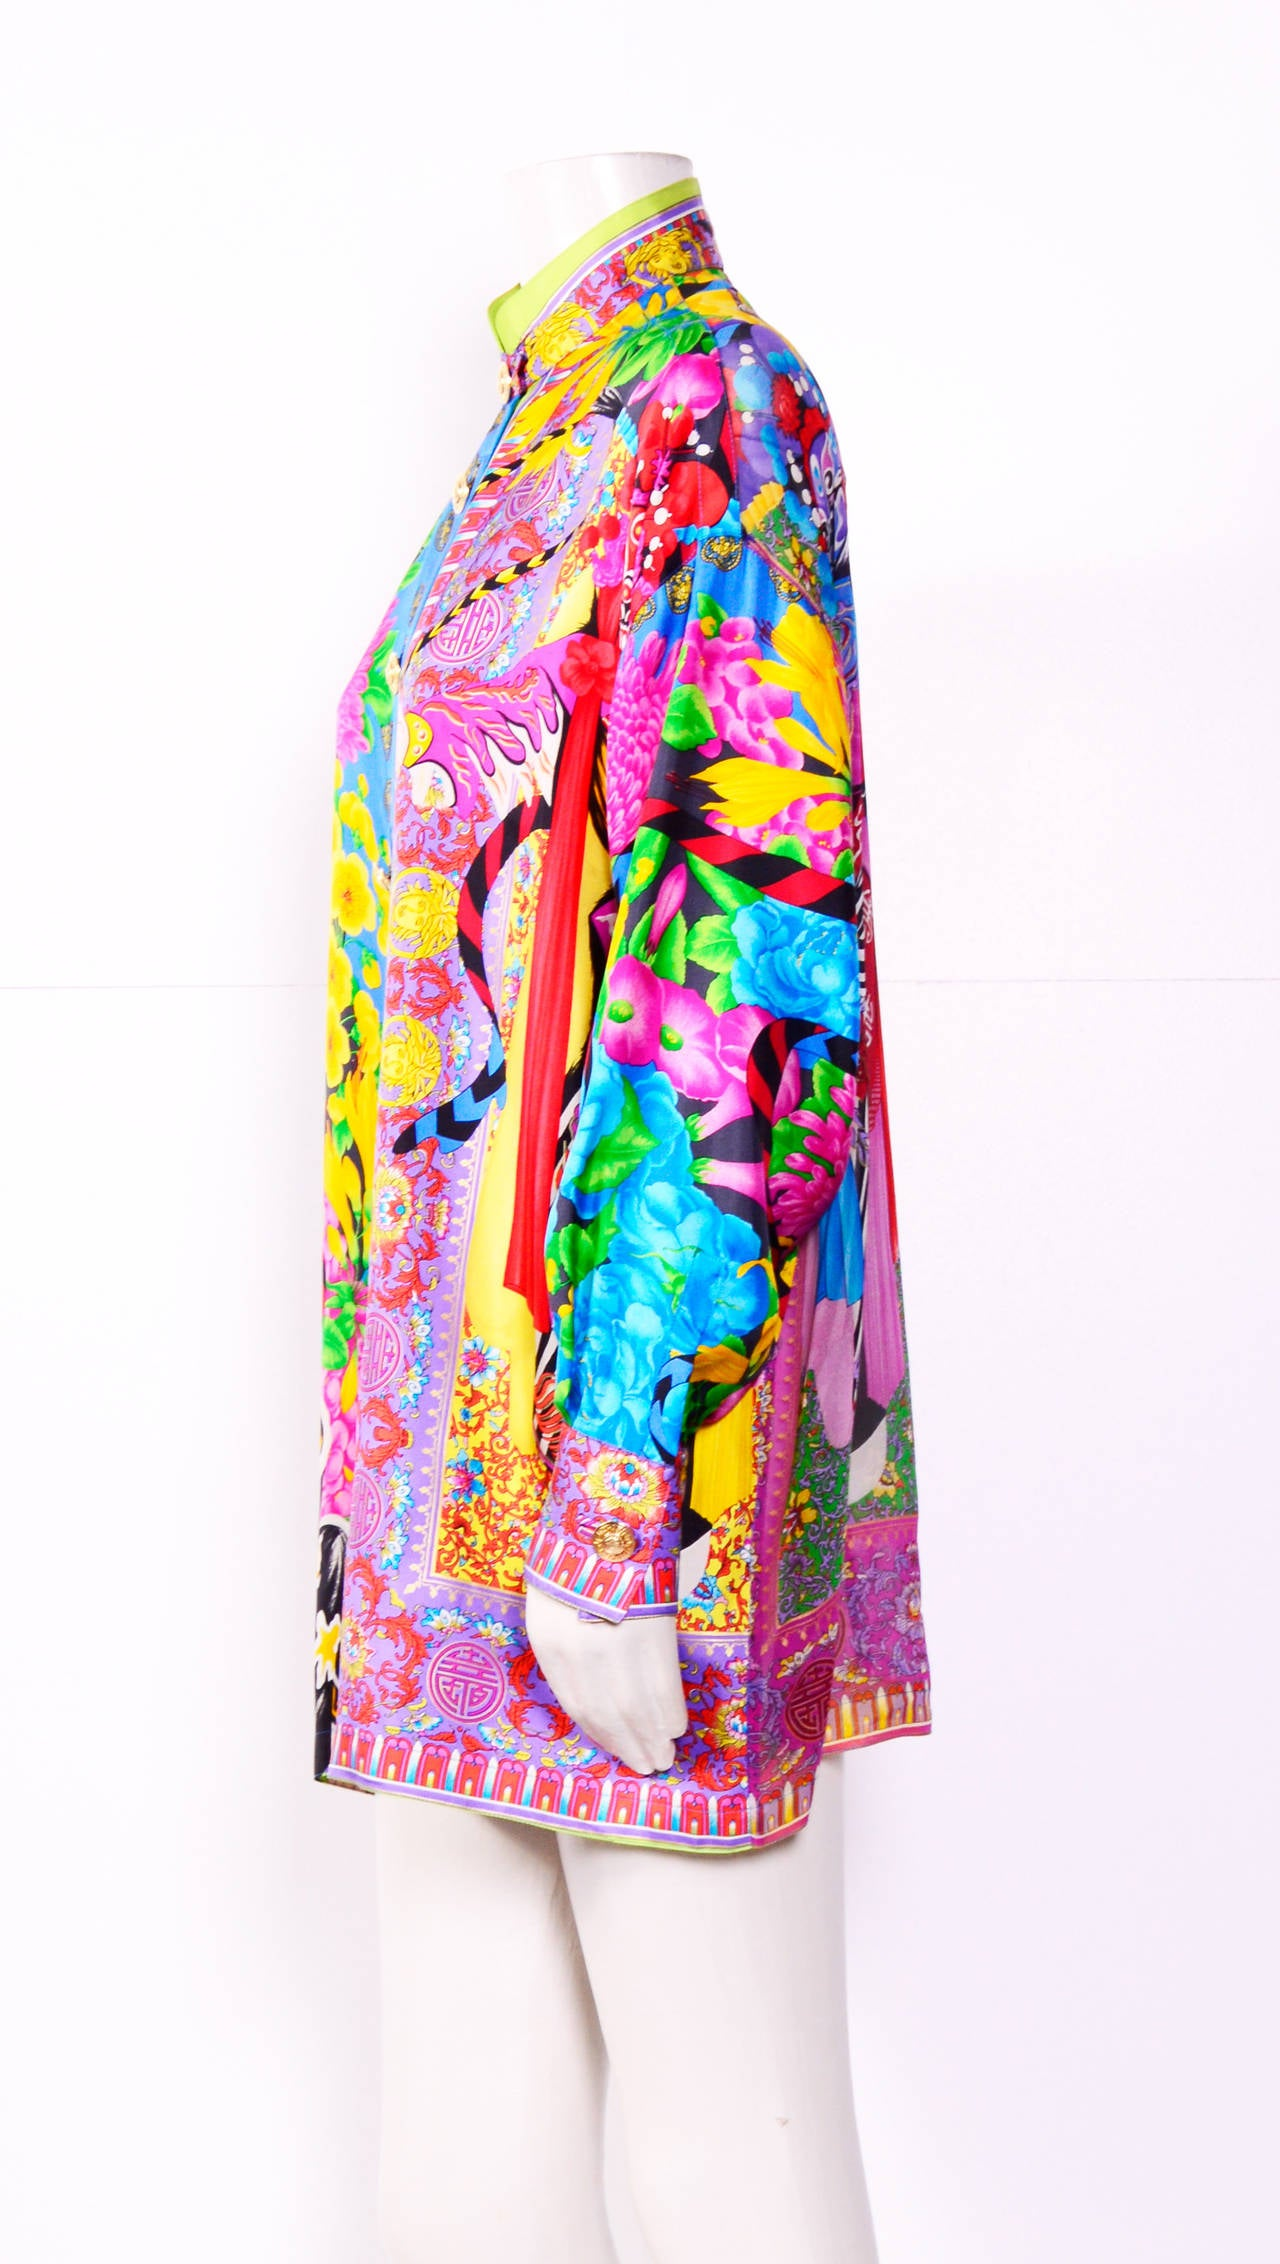 Vintage Gianni Versace Couture / Atelier Silk Print Oversized Blouse 2